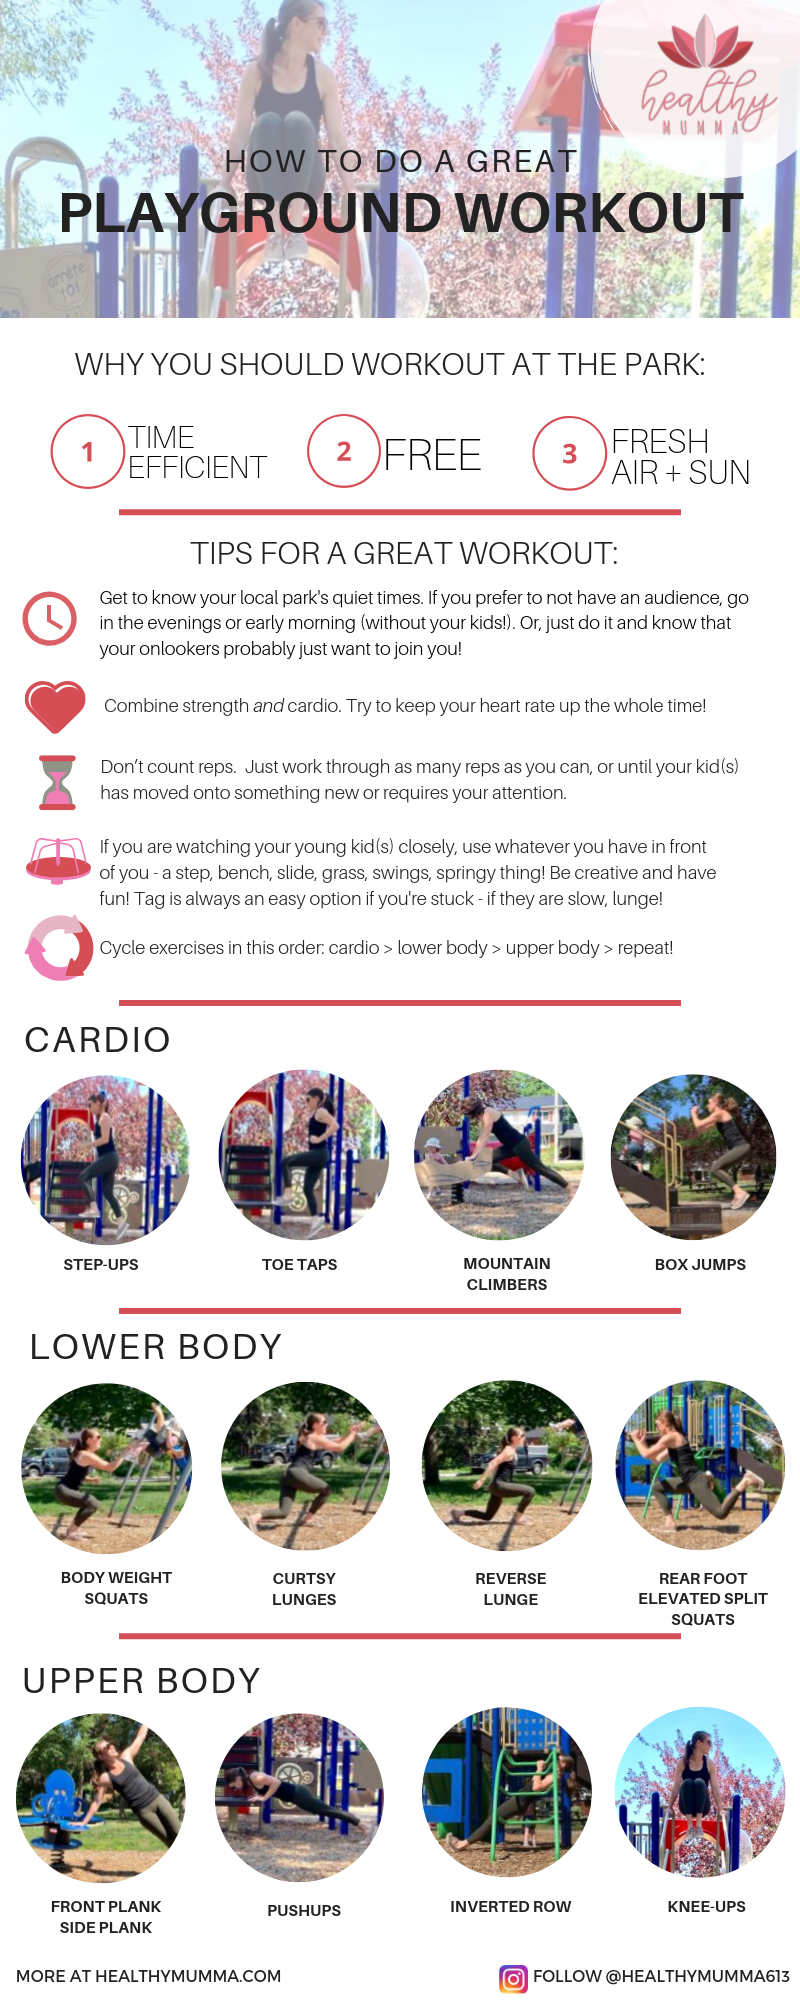 These are the best exercises to do at the park or playground